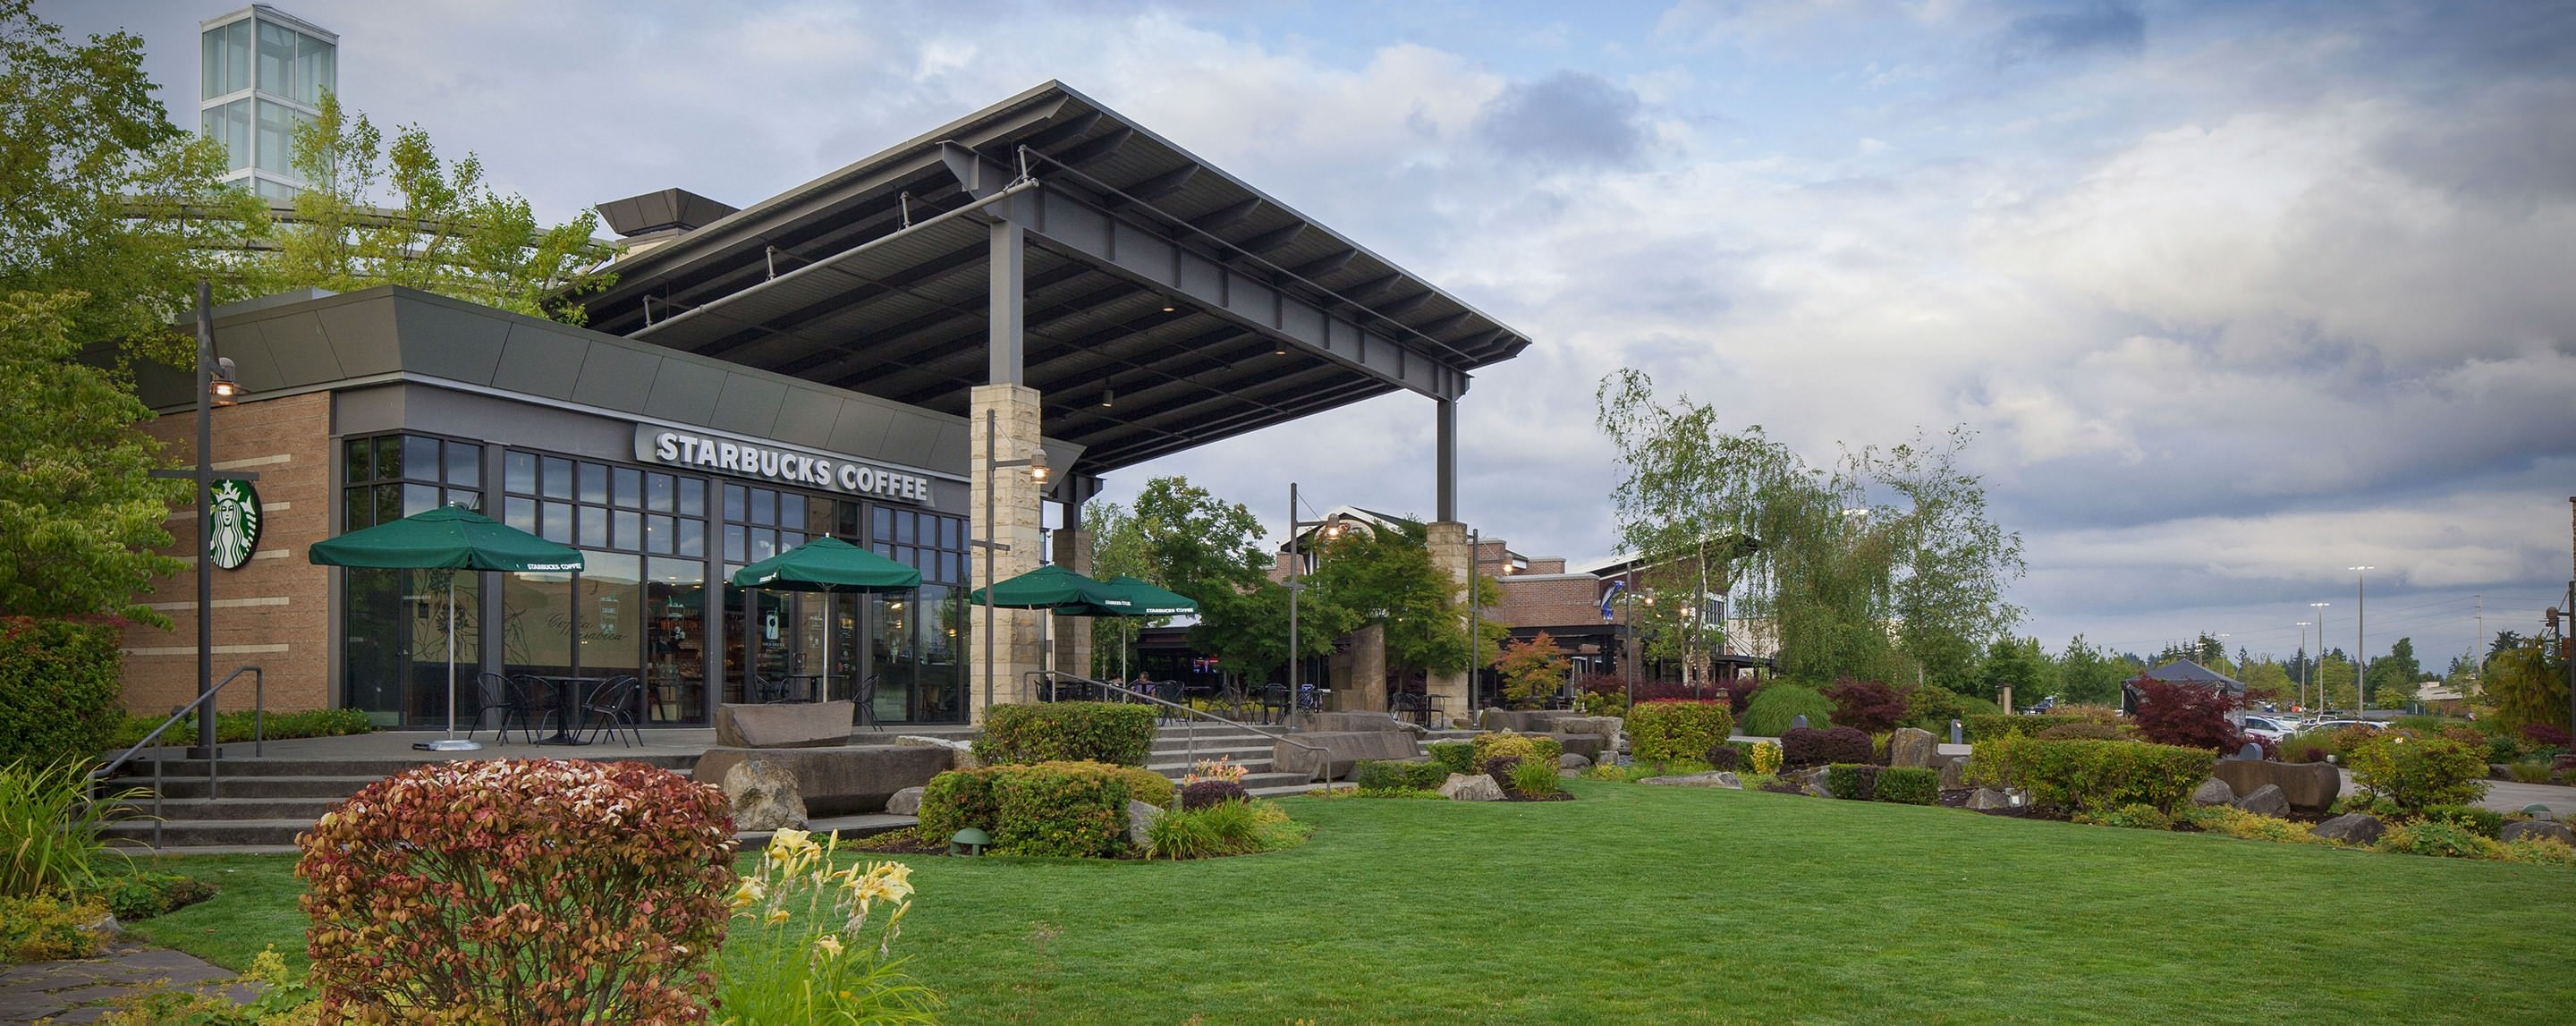 On a sunny day, the Starbucks Coffee at Alderwood overlooks a grassy open space decorated with plants and flowers